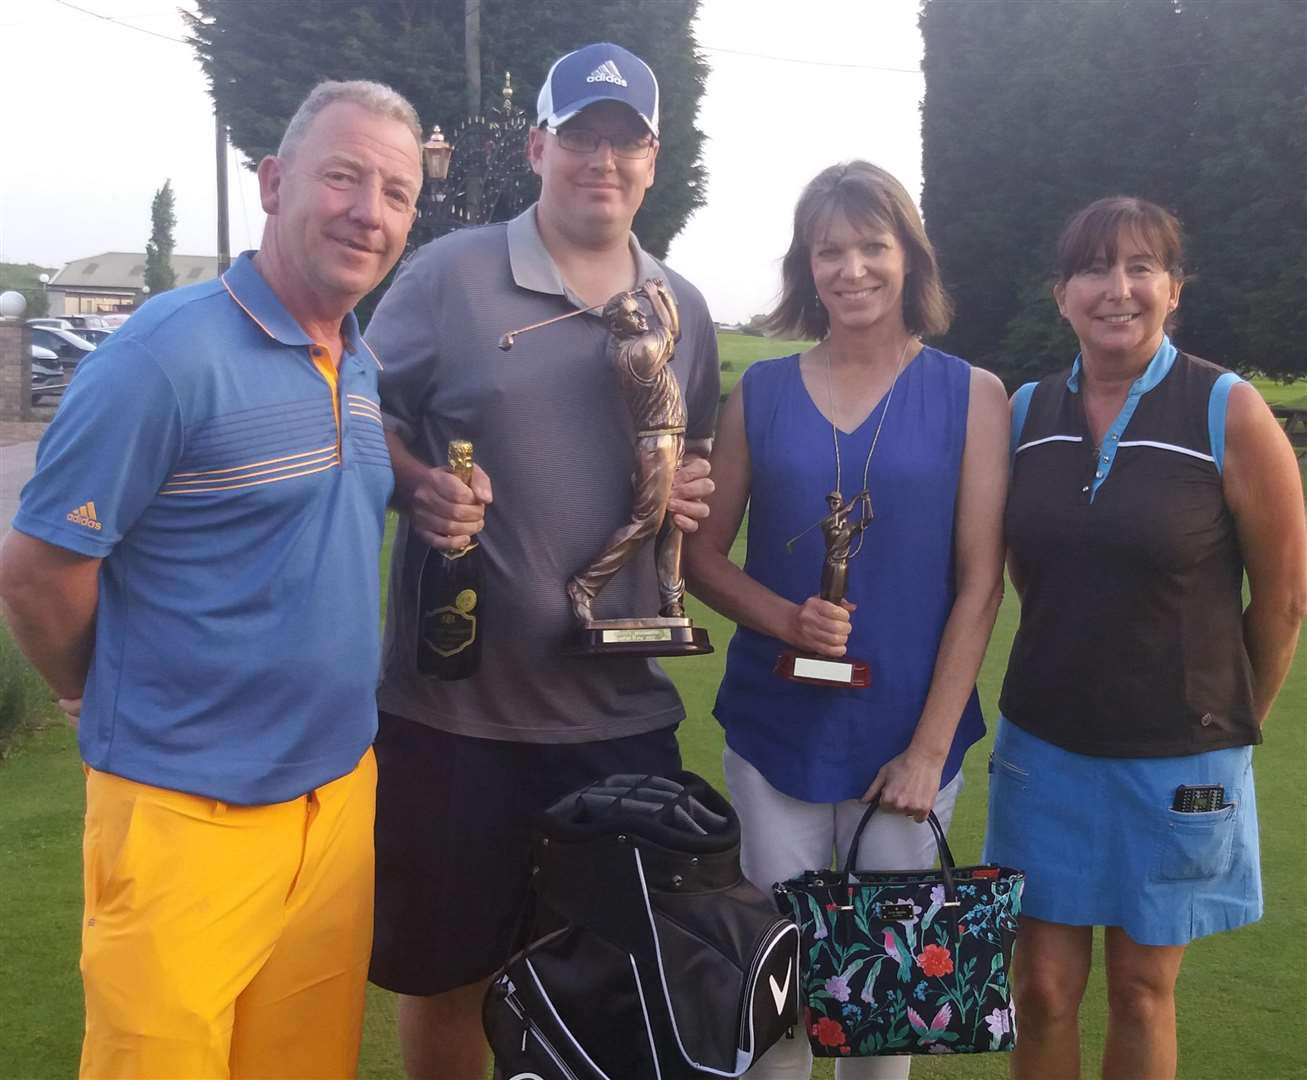 Nick and Kim Markillie (far left and right) with winners Lewis Field and Lynn Exley.